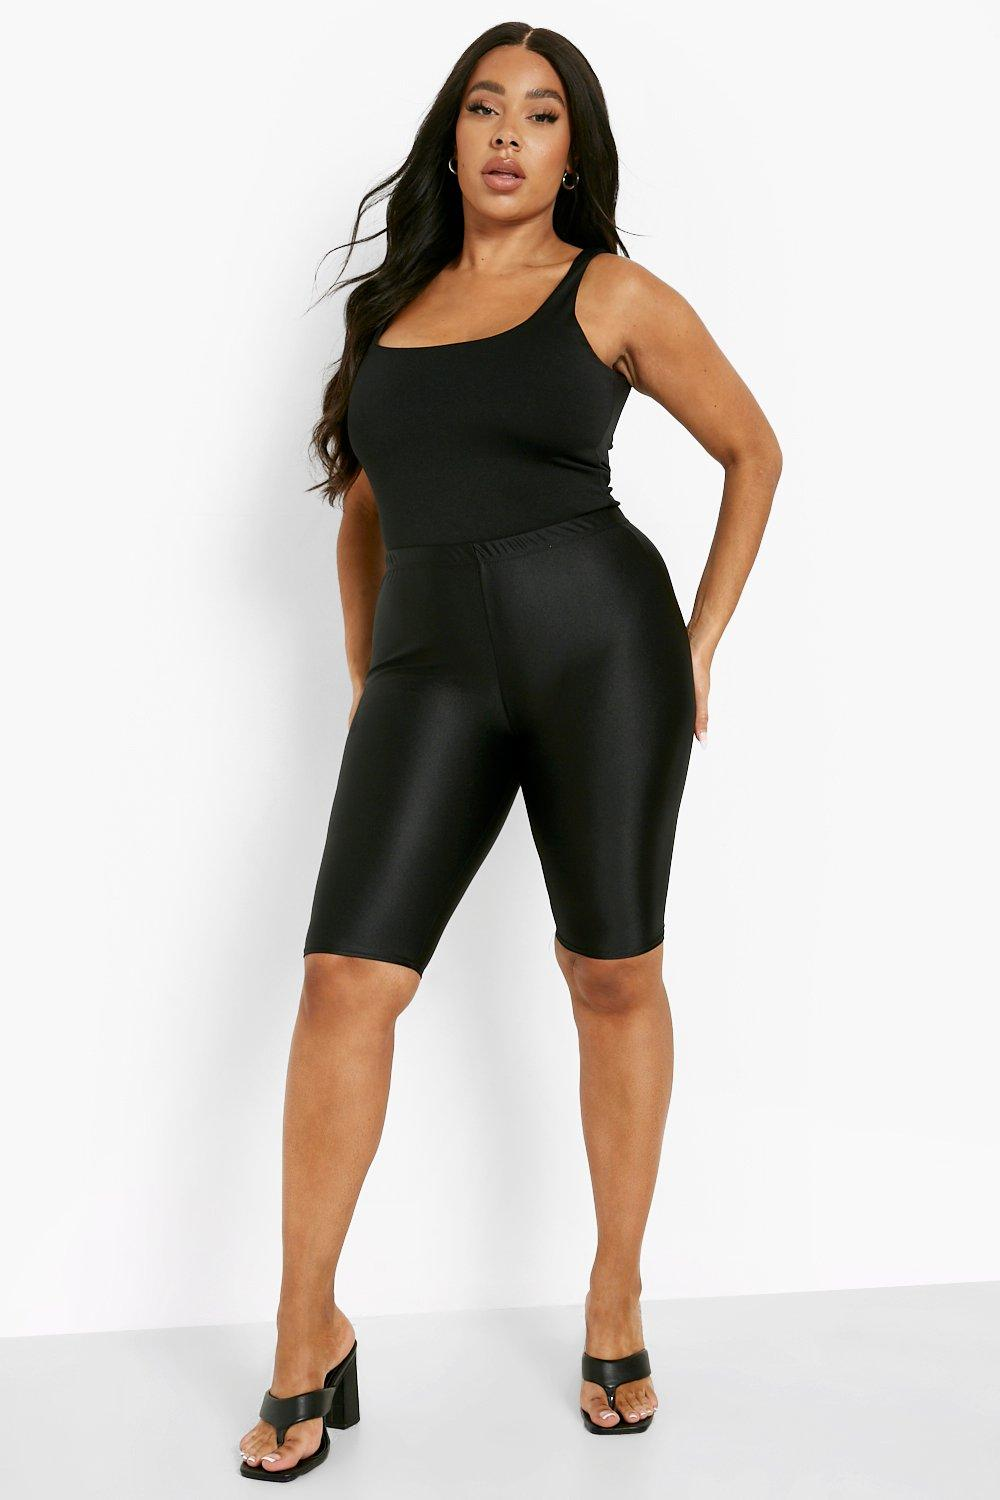 Plus Extra Thick Longline Cycling Shorts 8